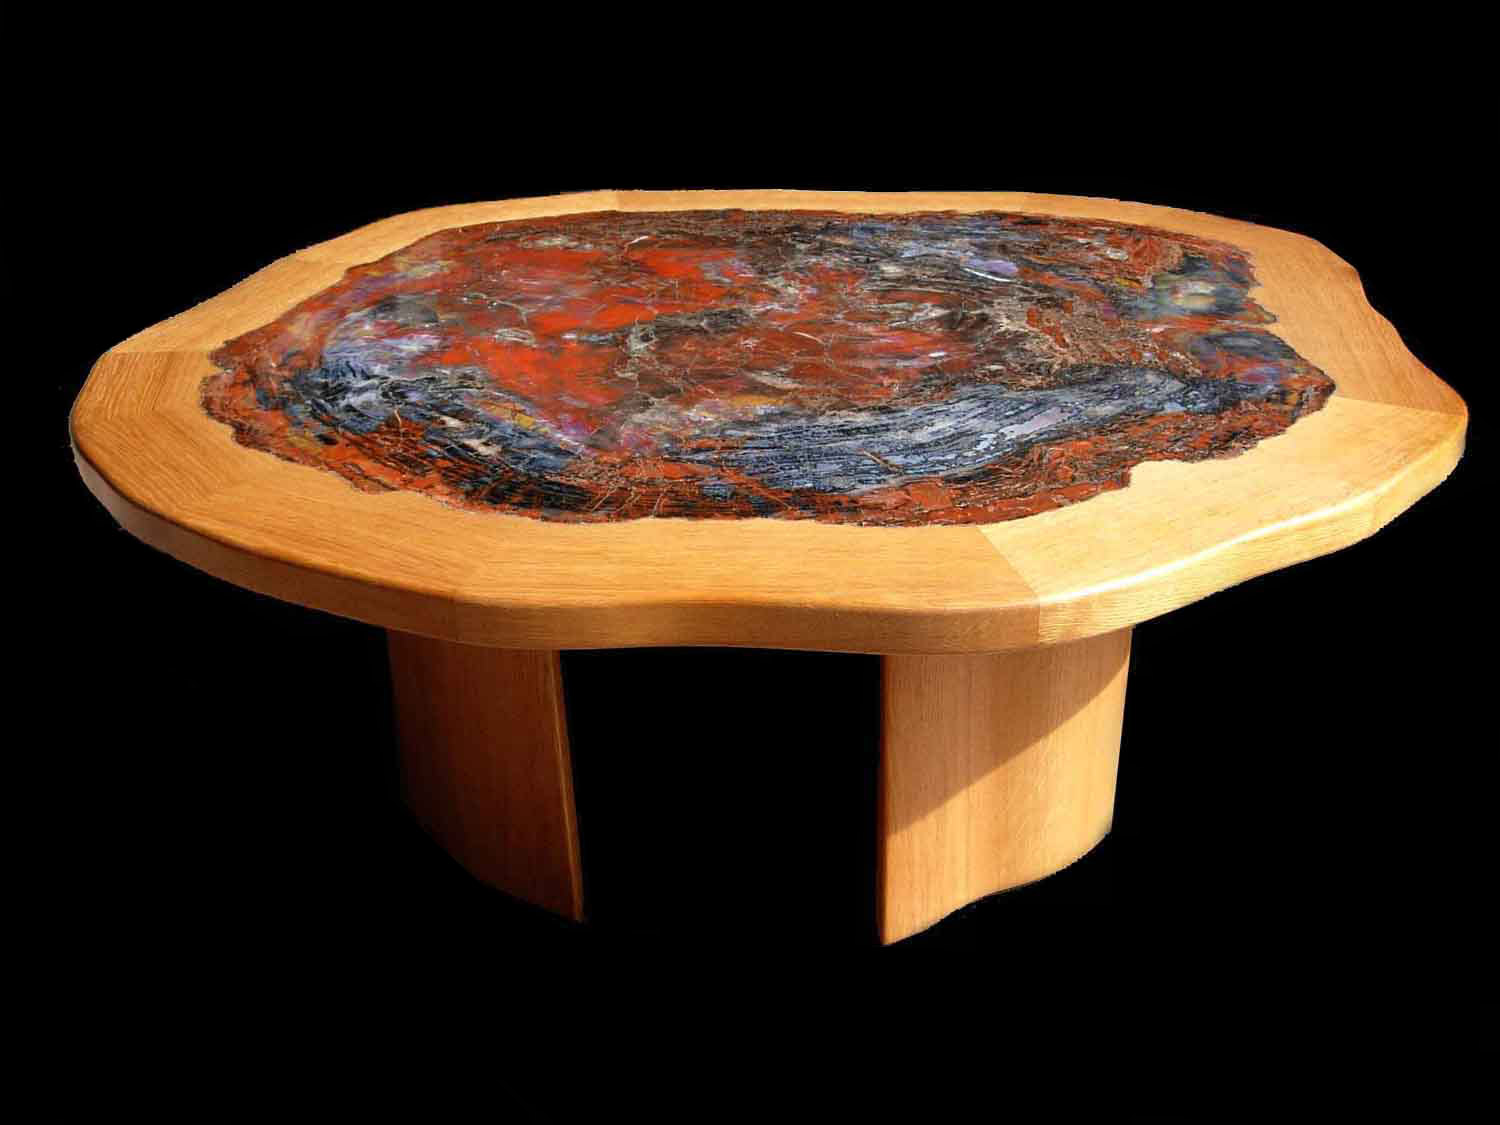 FINE QUALITY ARIZONA PETRIFIED WOOD TABLES, PETRIFIED WOOD SLABS